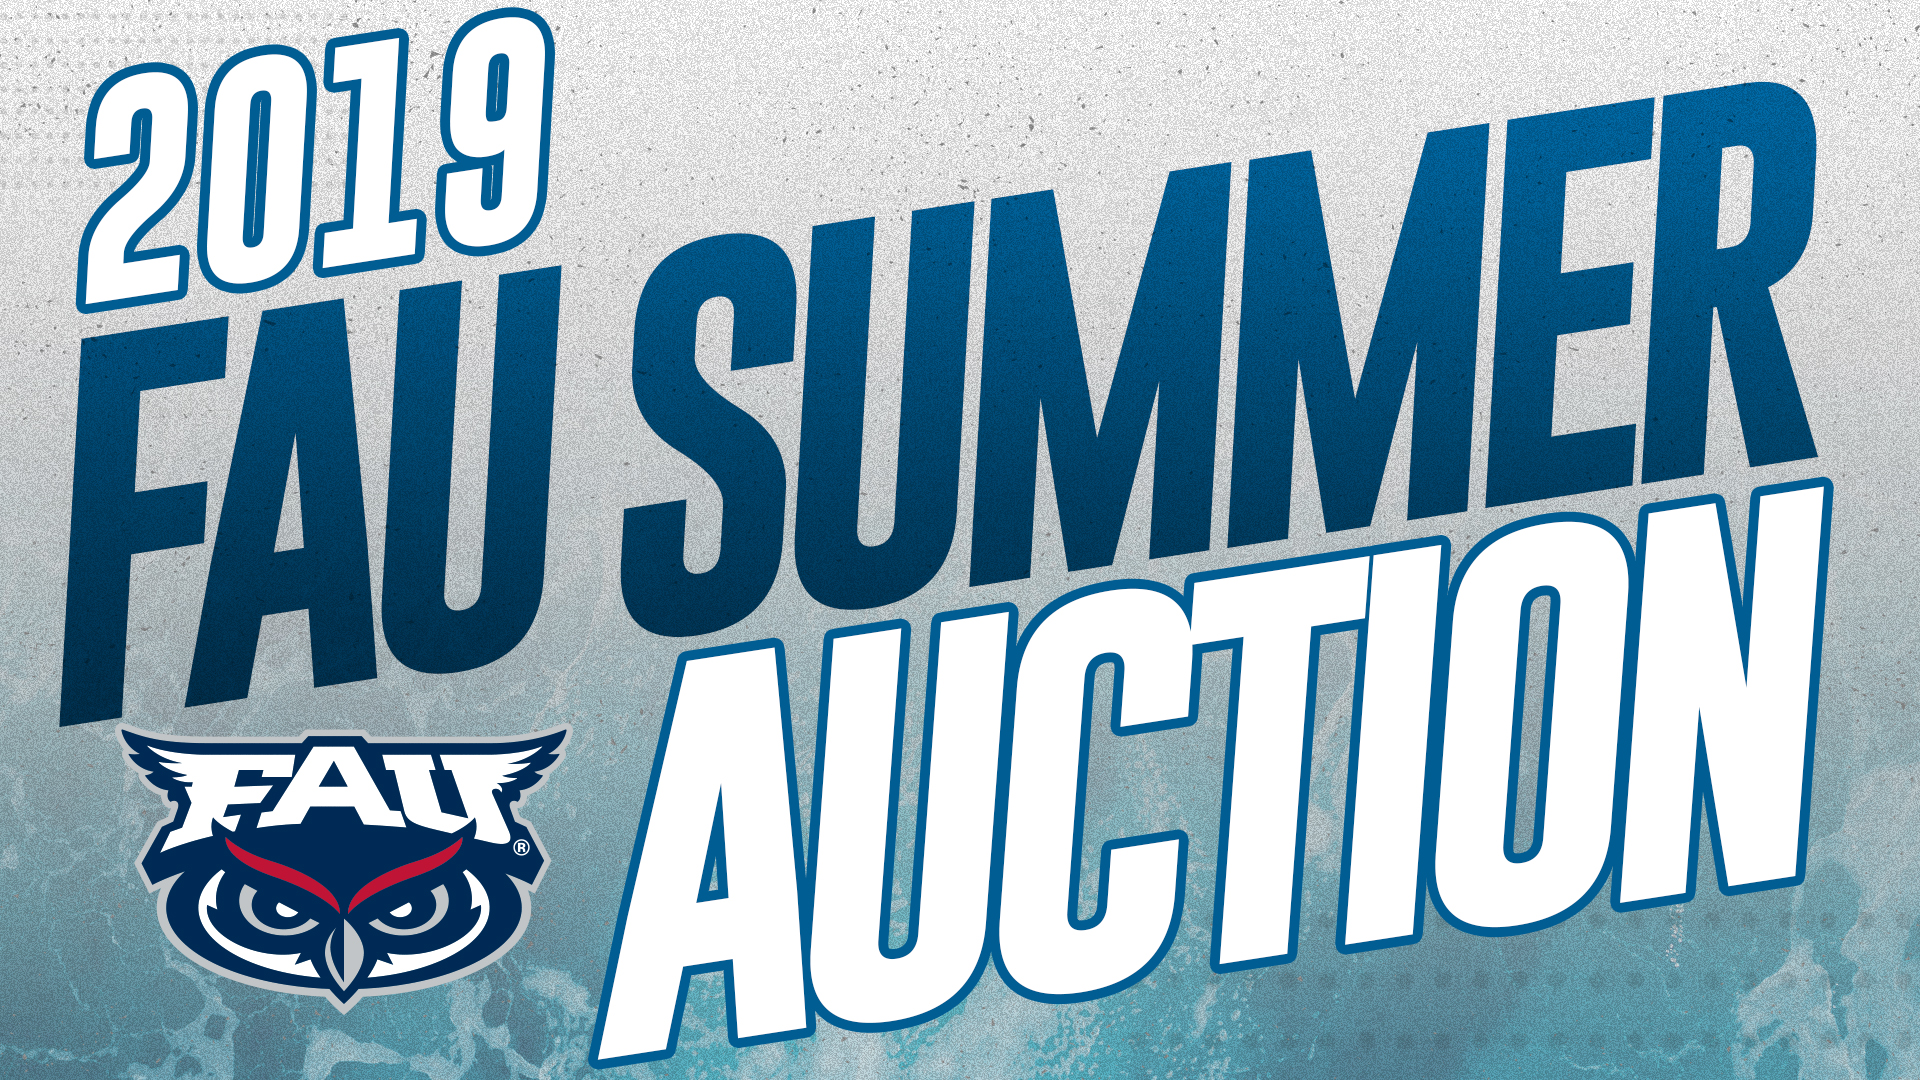 Fau Summer 2019 Schedule Athletics to Hold 2019 Summer Auction   Florida Atlantic